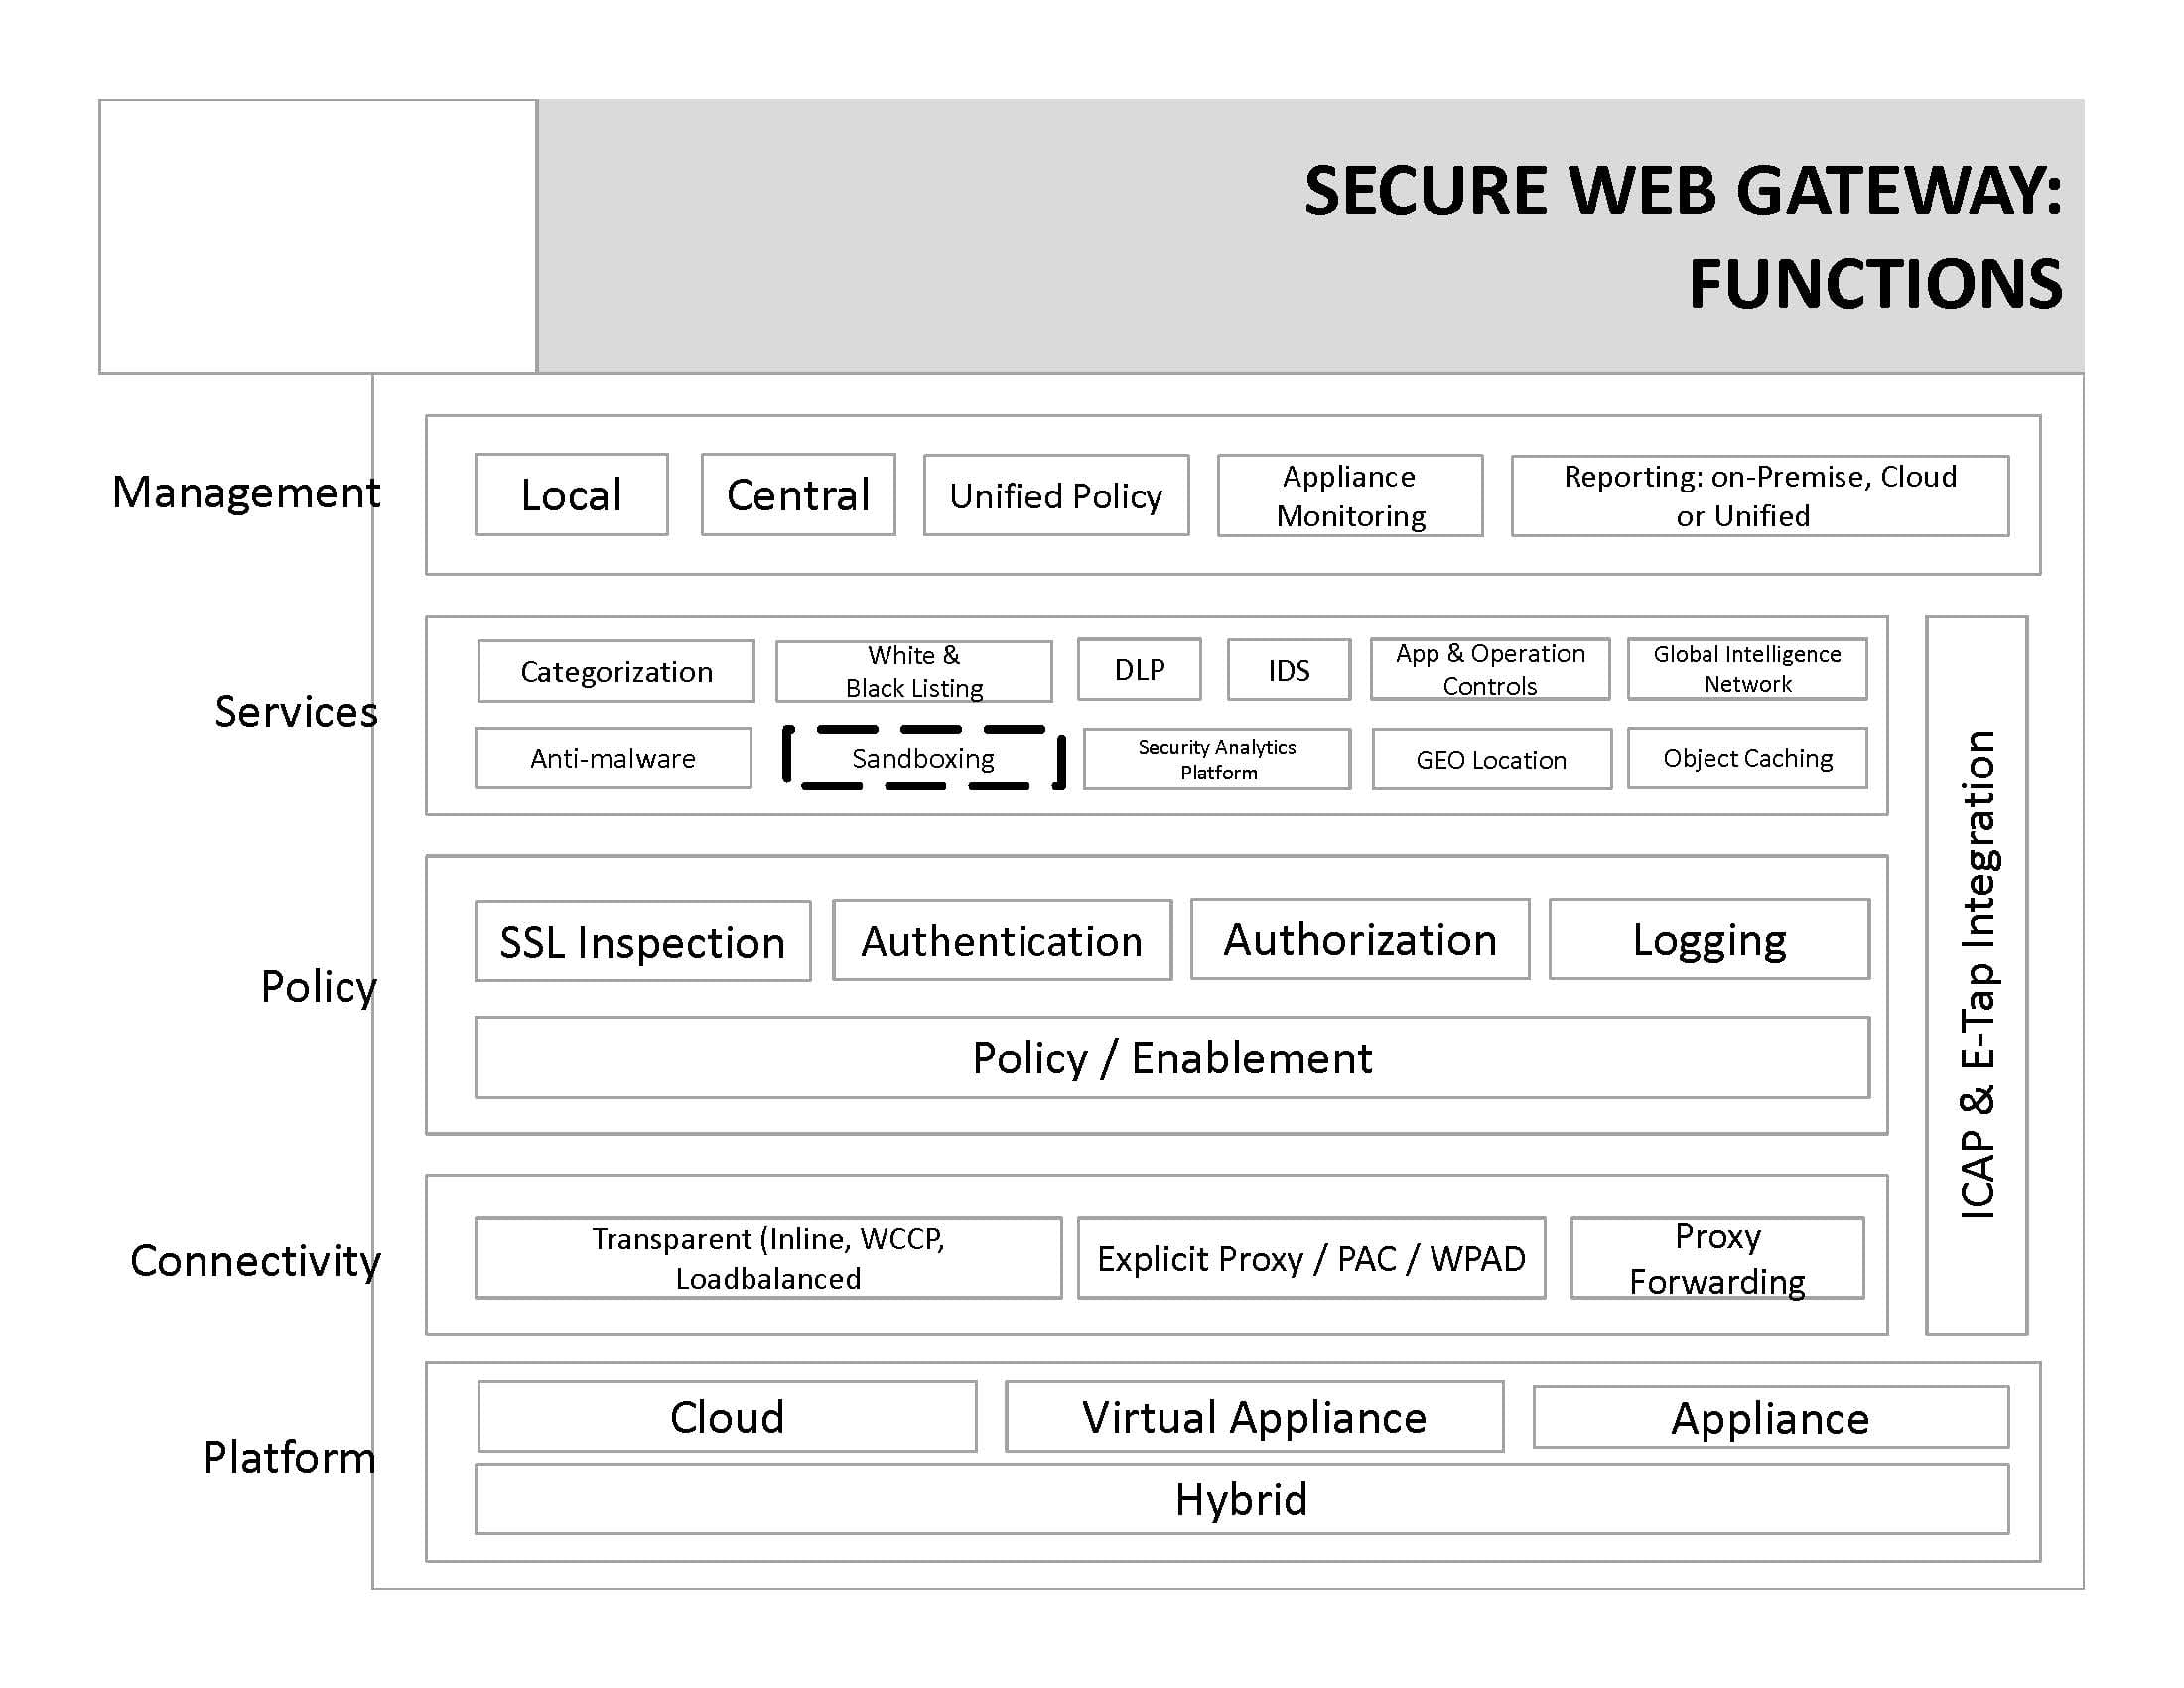 Secure Web Gateway Functions